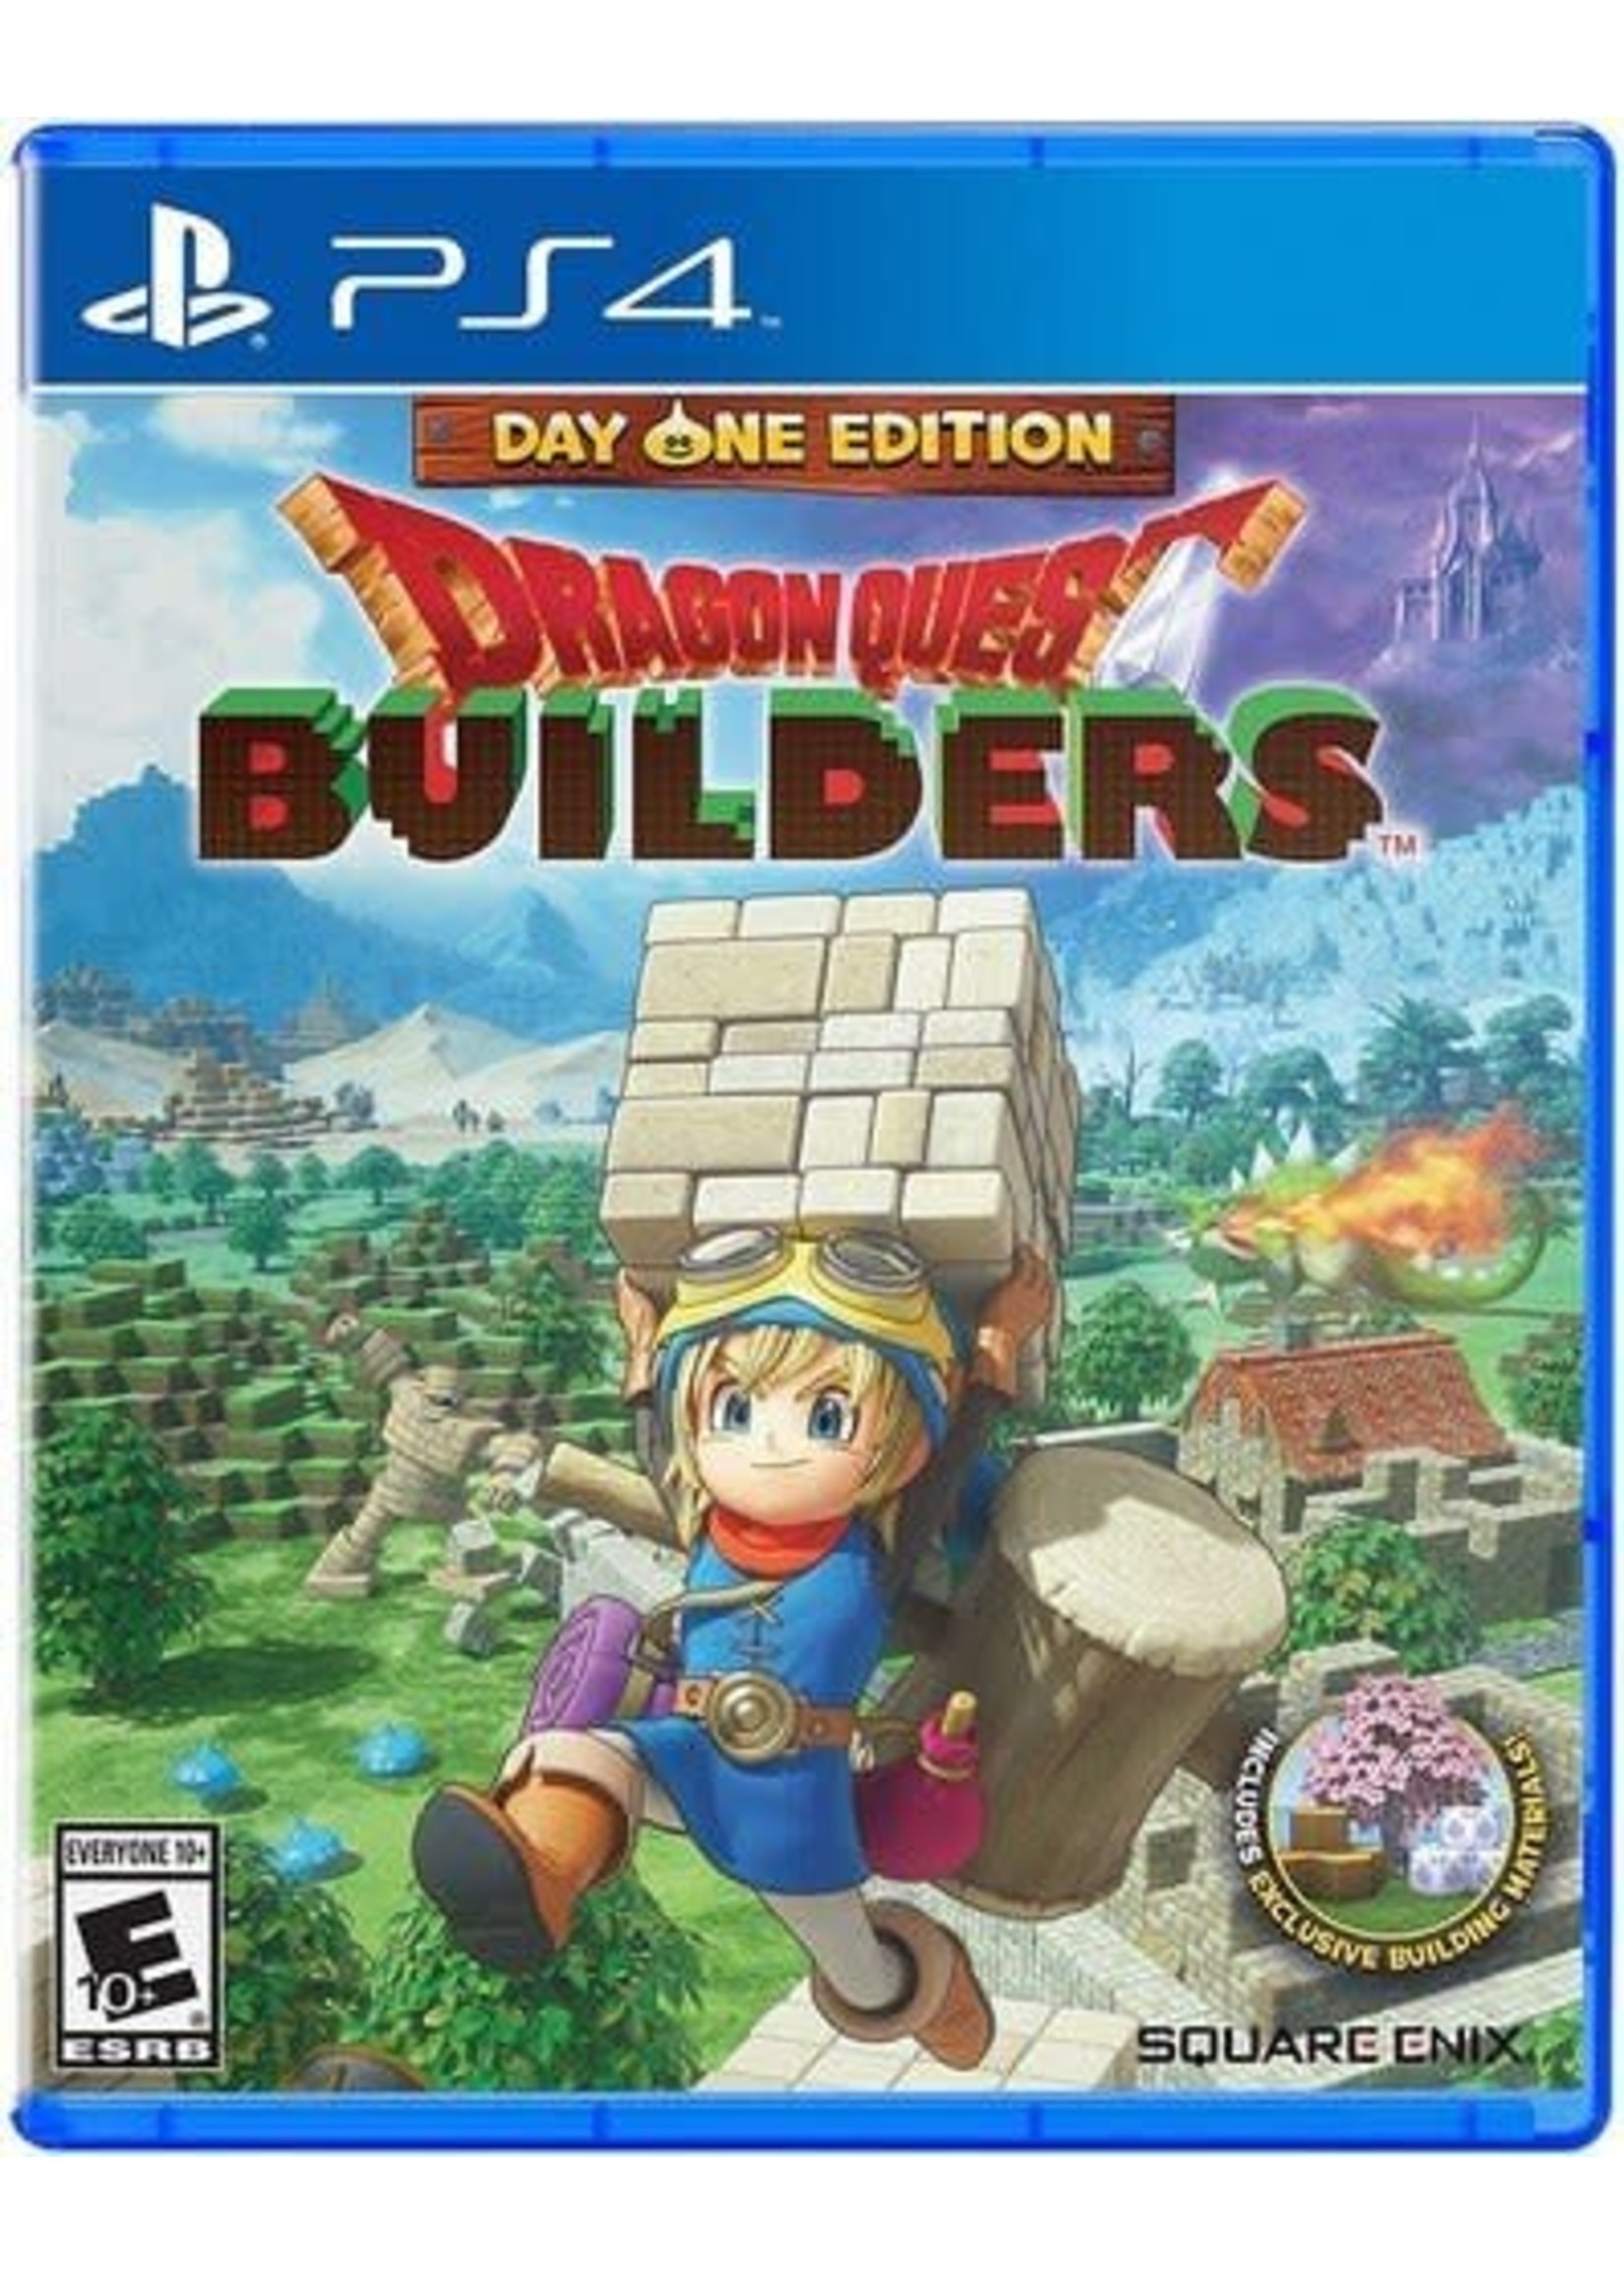 Dragon Quest Builders - PS4 PrePlayed